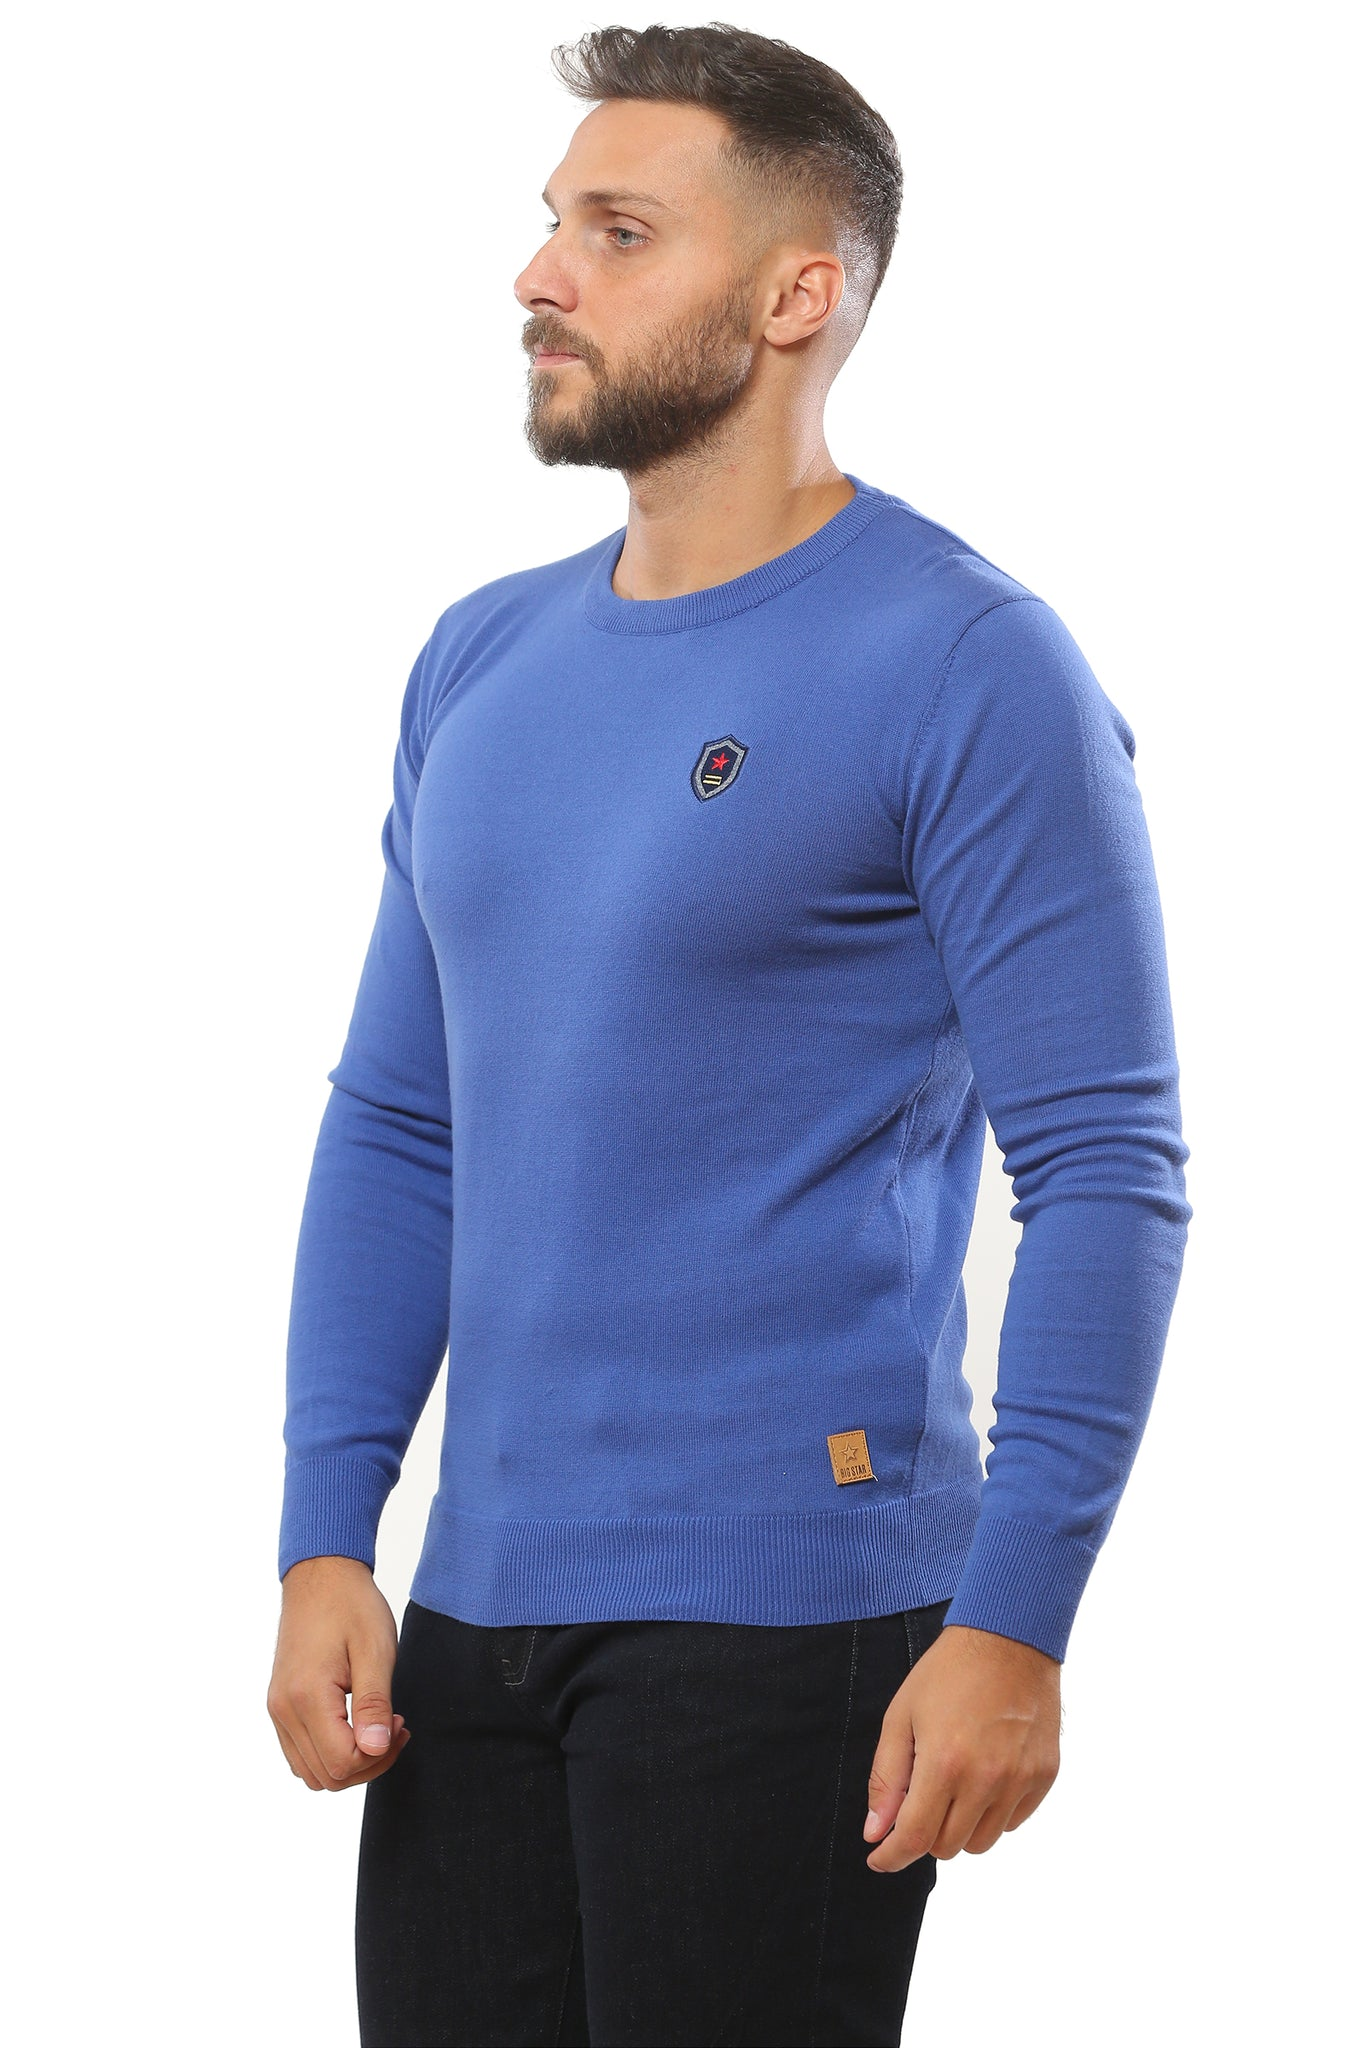 Basic Sweater Round Neck | Light Indigo